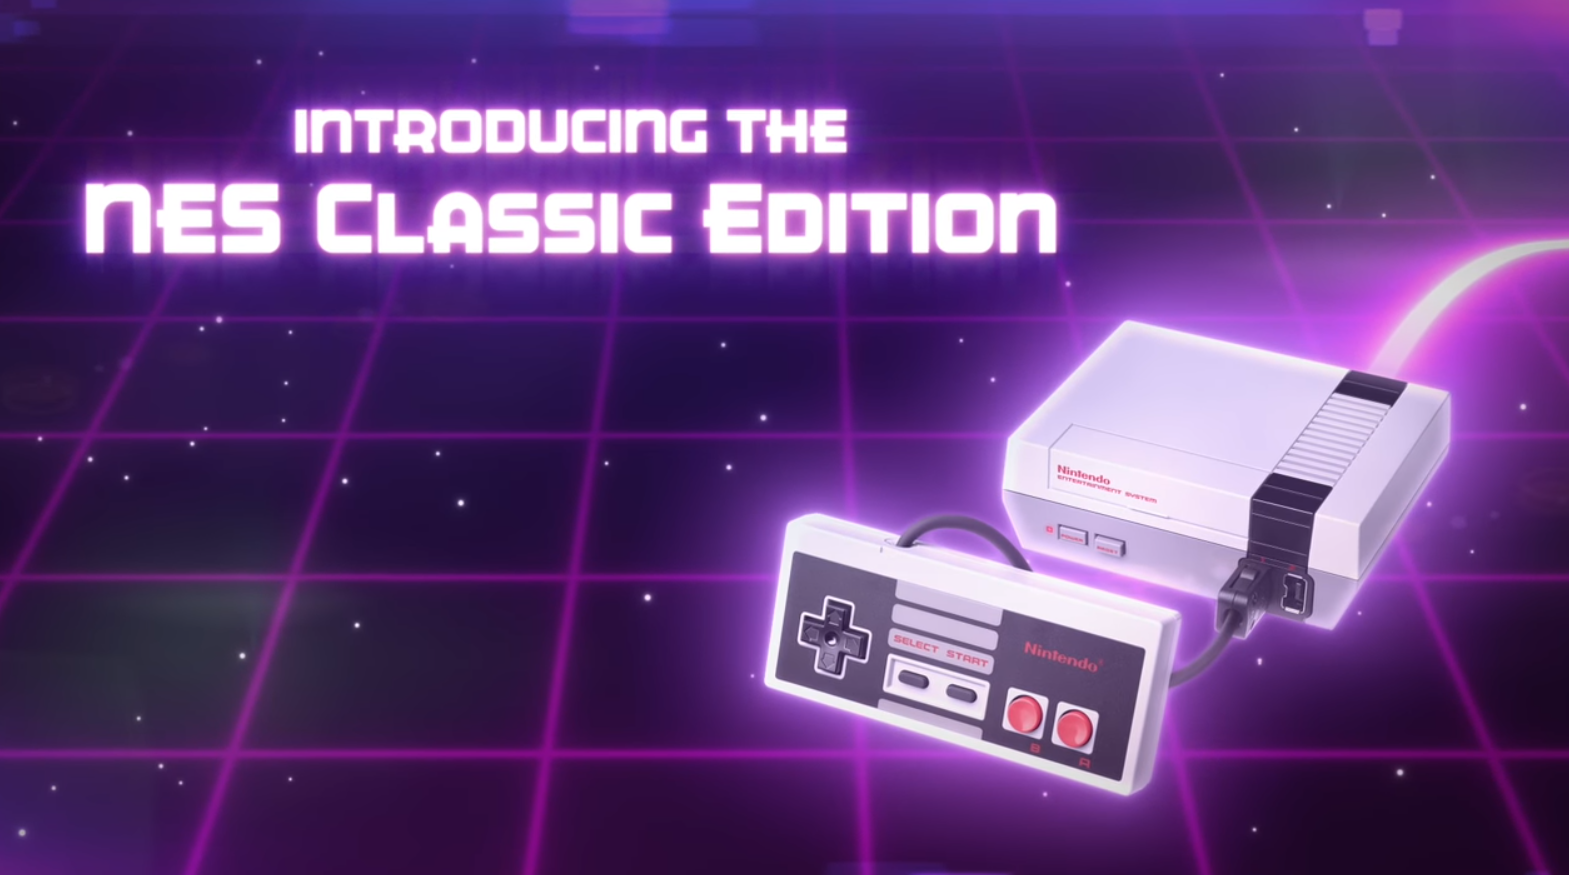 NES Classic Edition Sells 196,000 In The U.S.